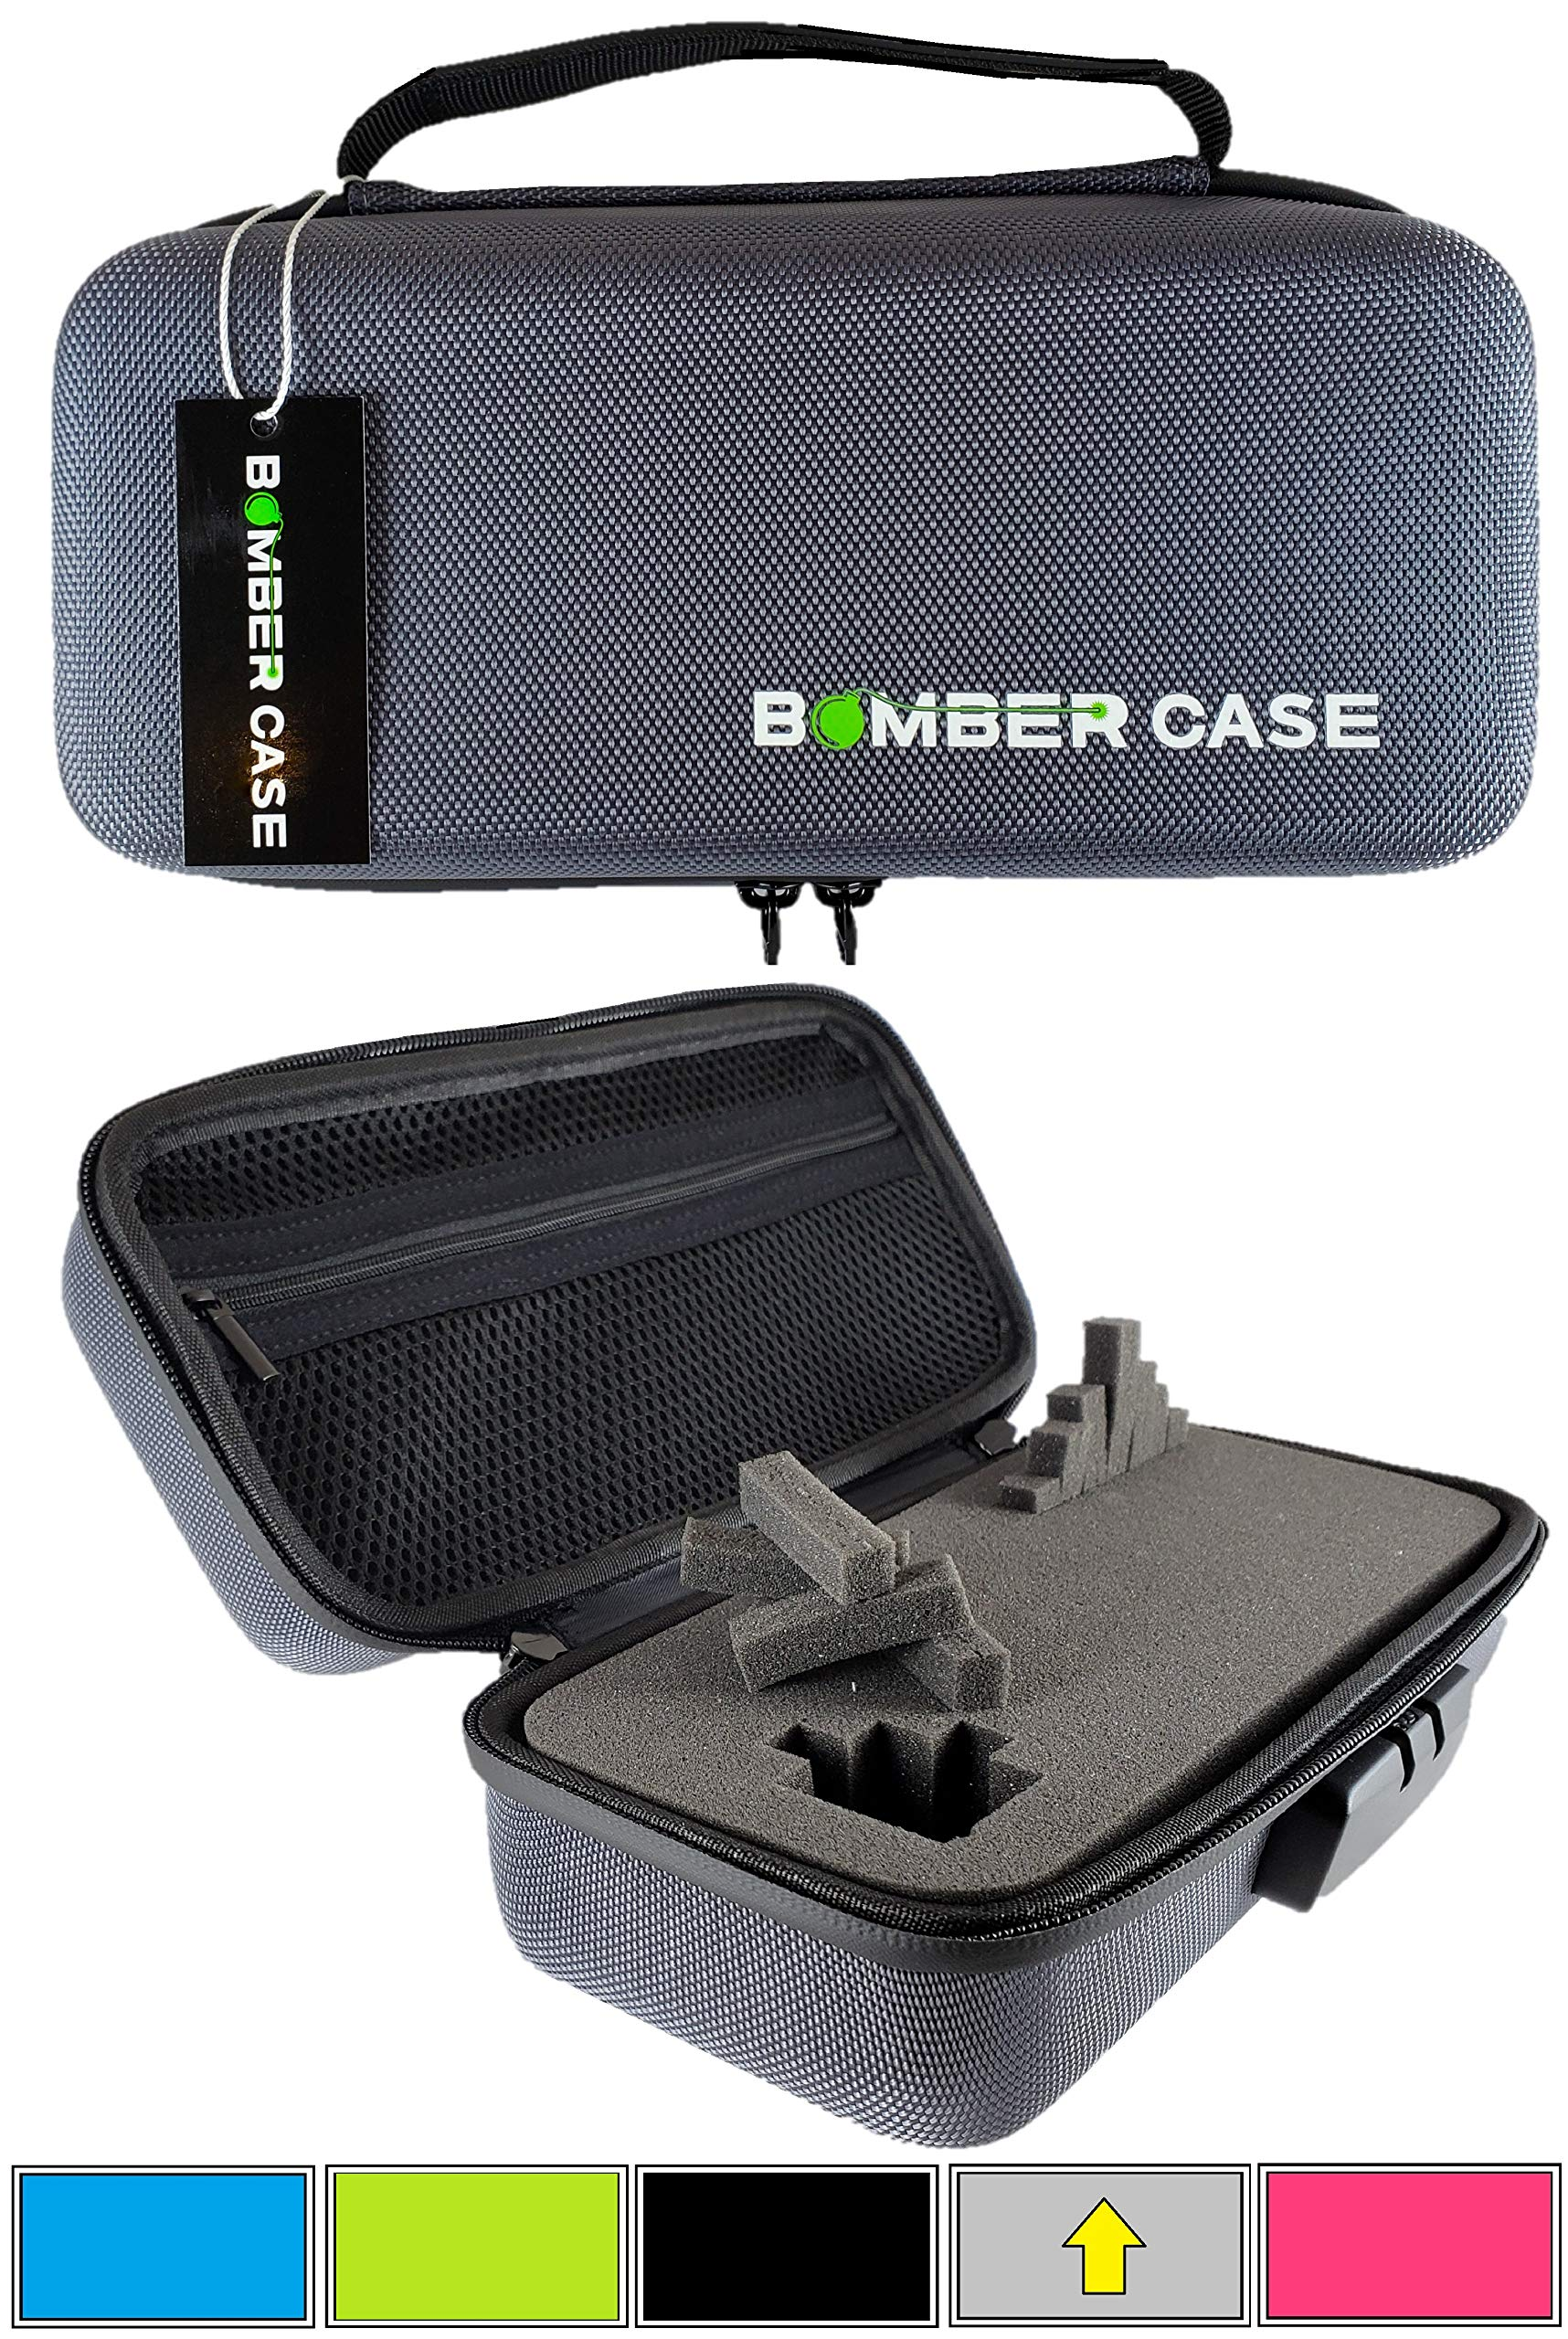 BOMBER CASE - Stash Case - Locking - Smell Proof - Customizable Foam Interior - Fits up to 9.5'' x 4'' - Soft Sides with Odor Proof Zipper and Combination Lock - No Smell - Gray by BOMBER CASE